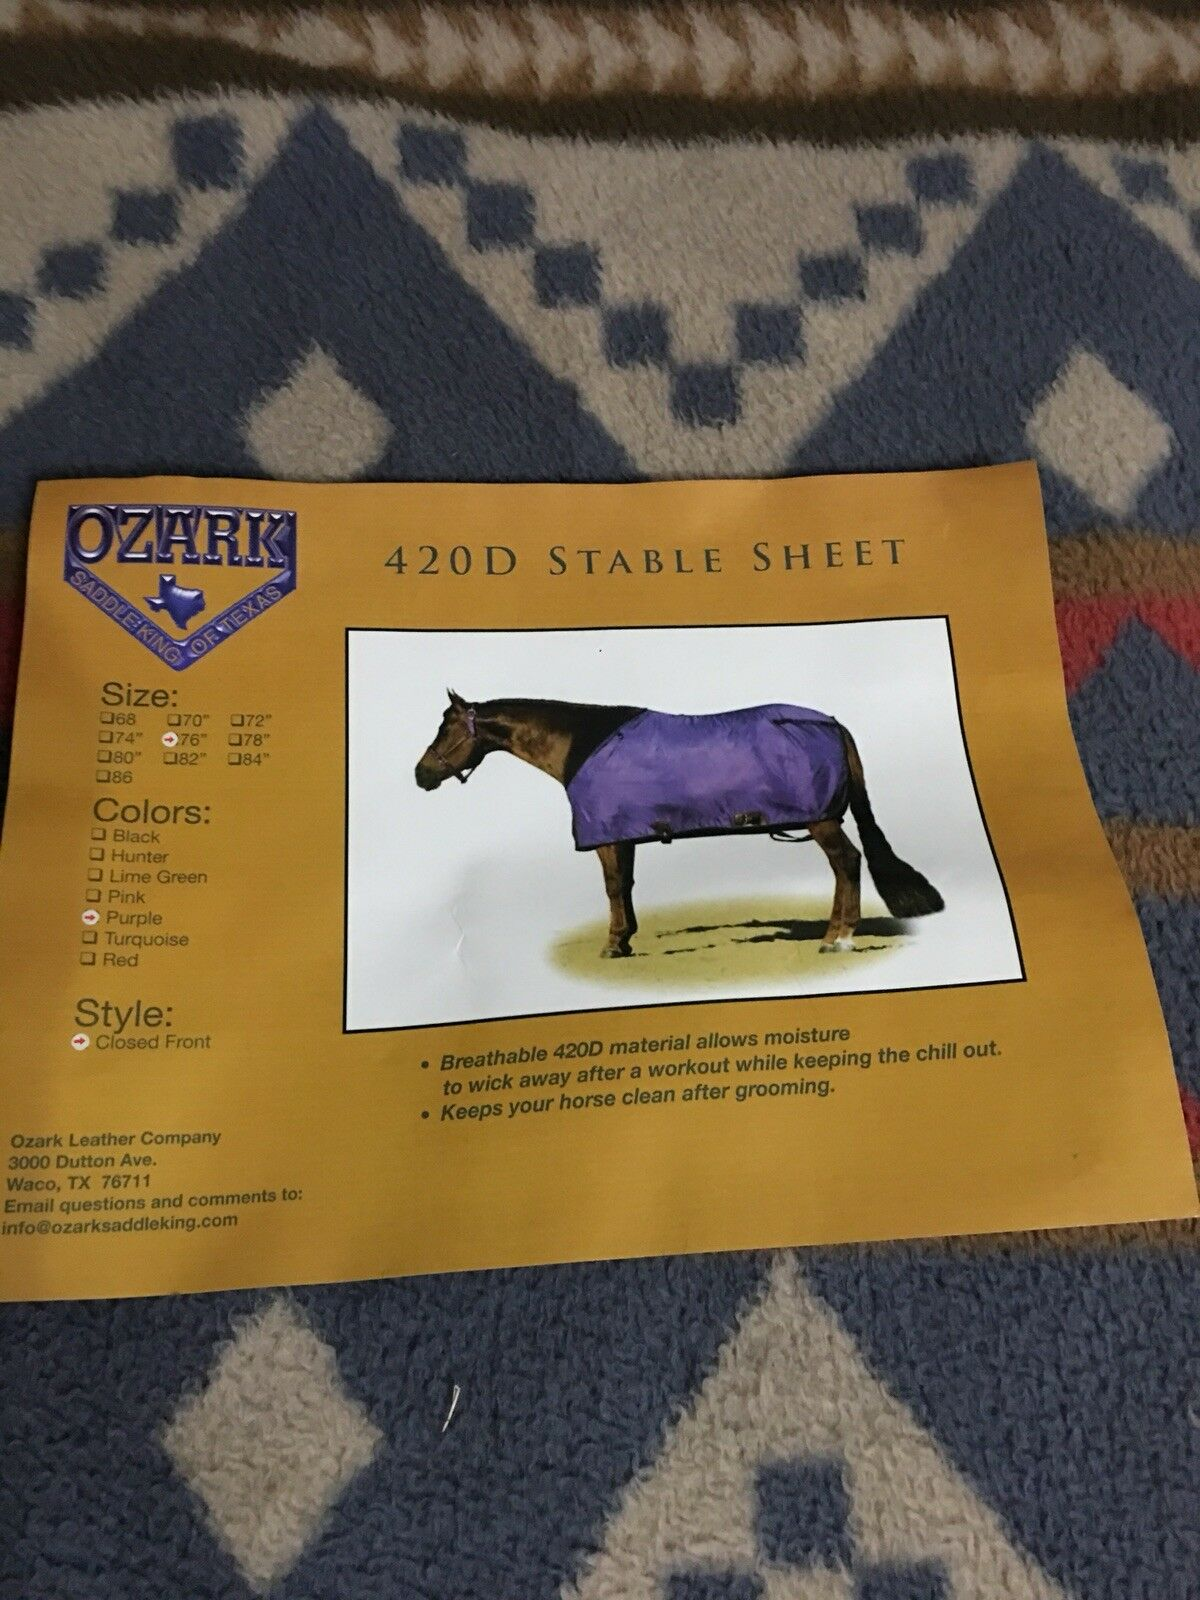 New Ozark Leather Nylon Summer  Sheet Sz 74 Closed Front Leg Straps  Purple  big discount prices